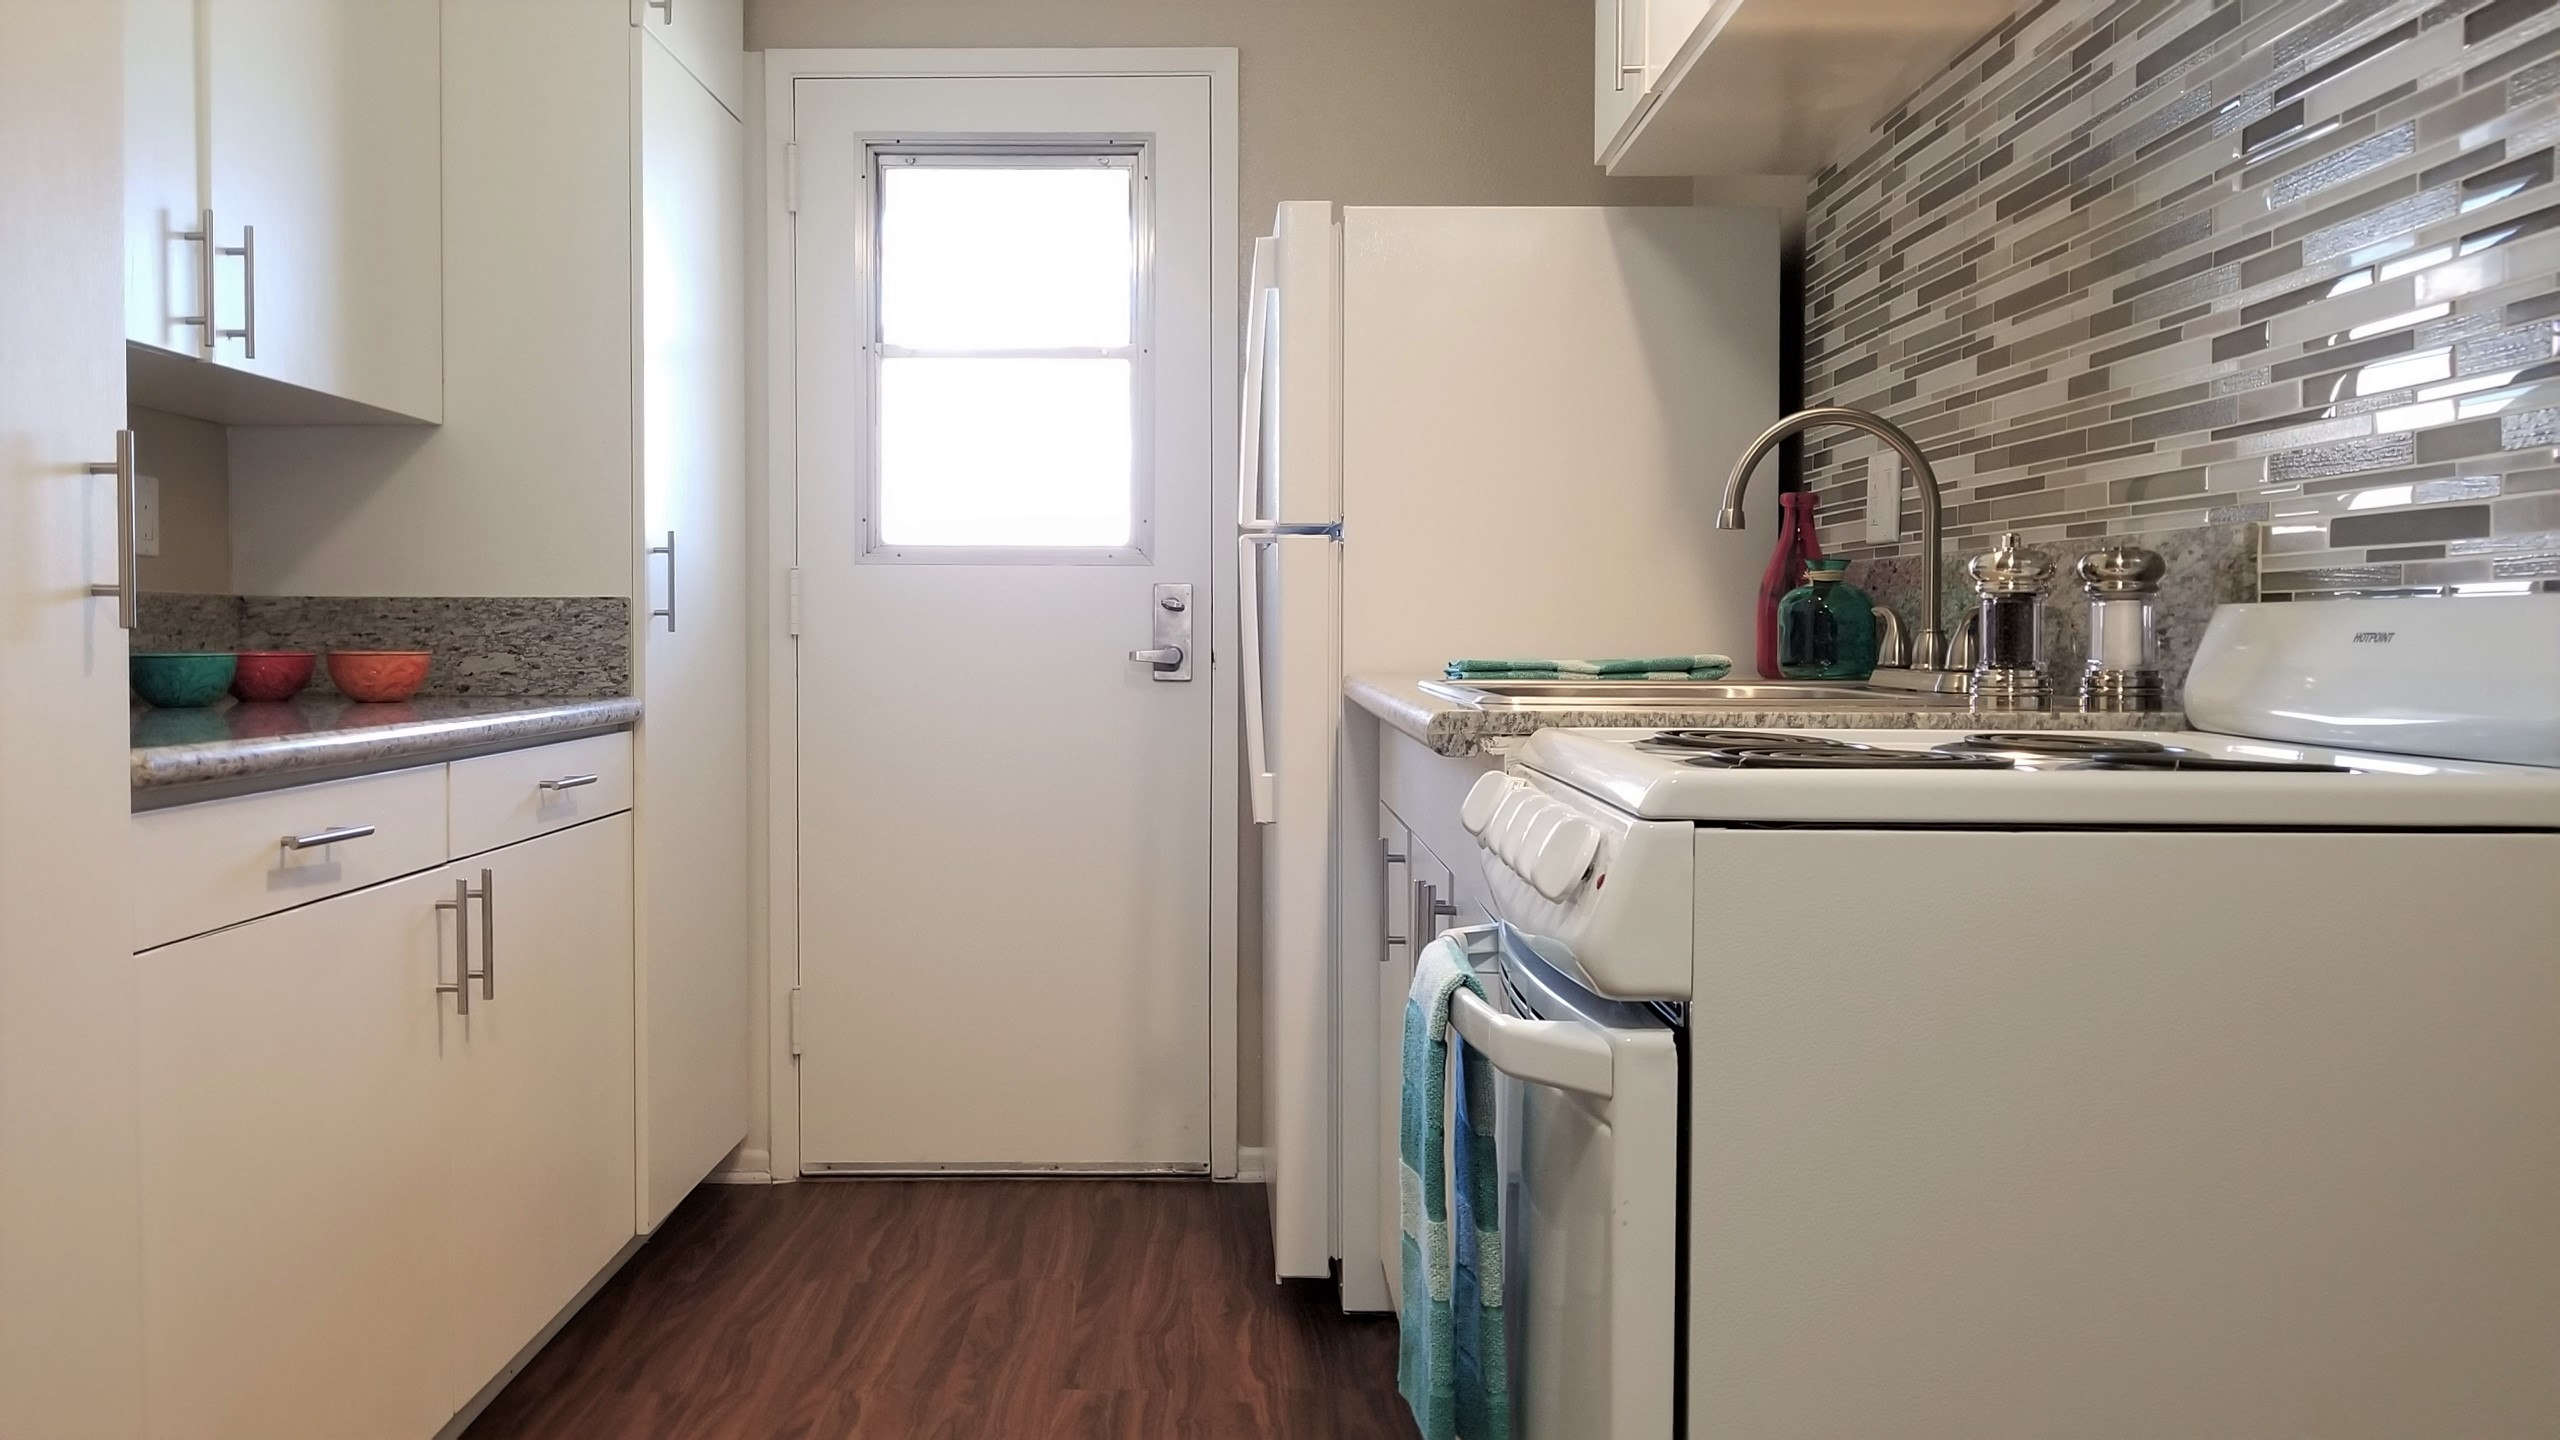 Cypress Senior Aparments kitchen interior